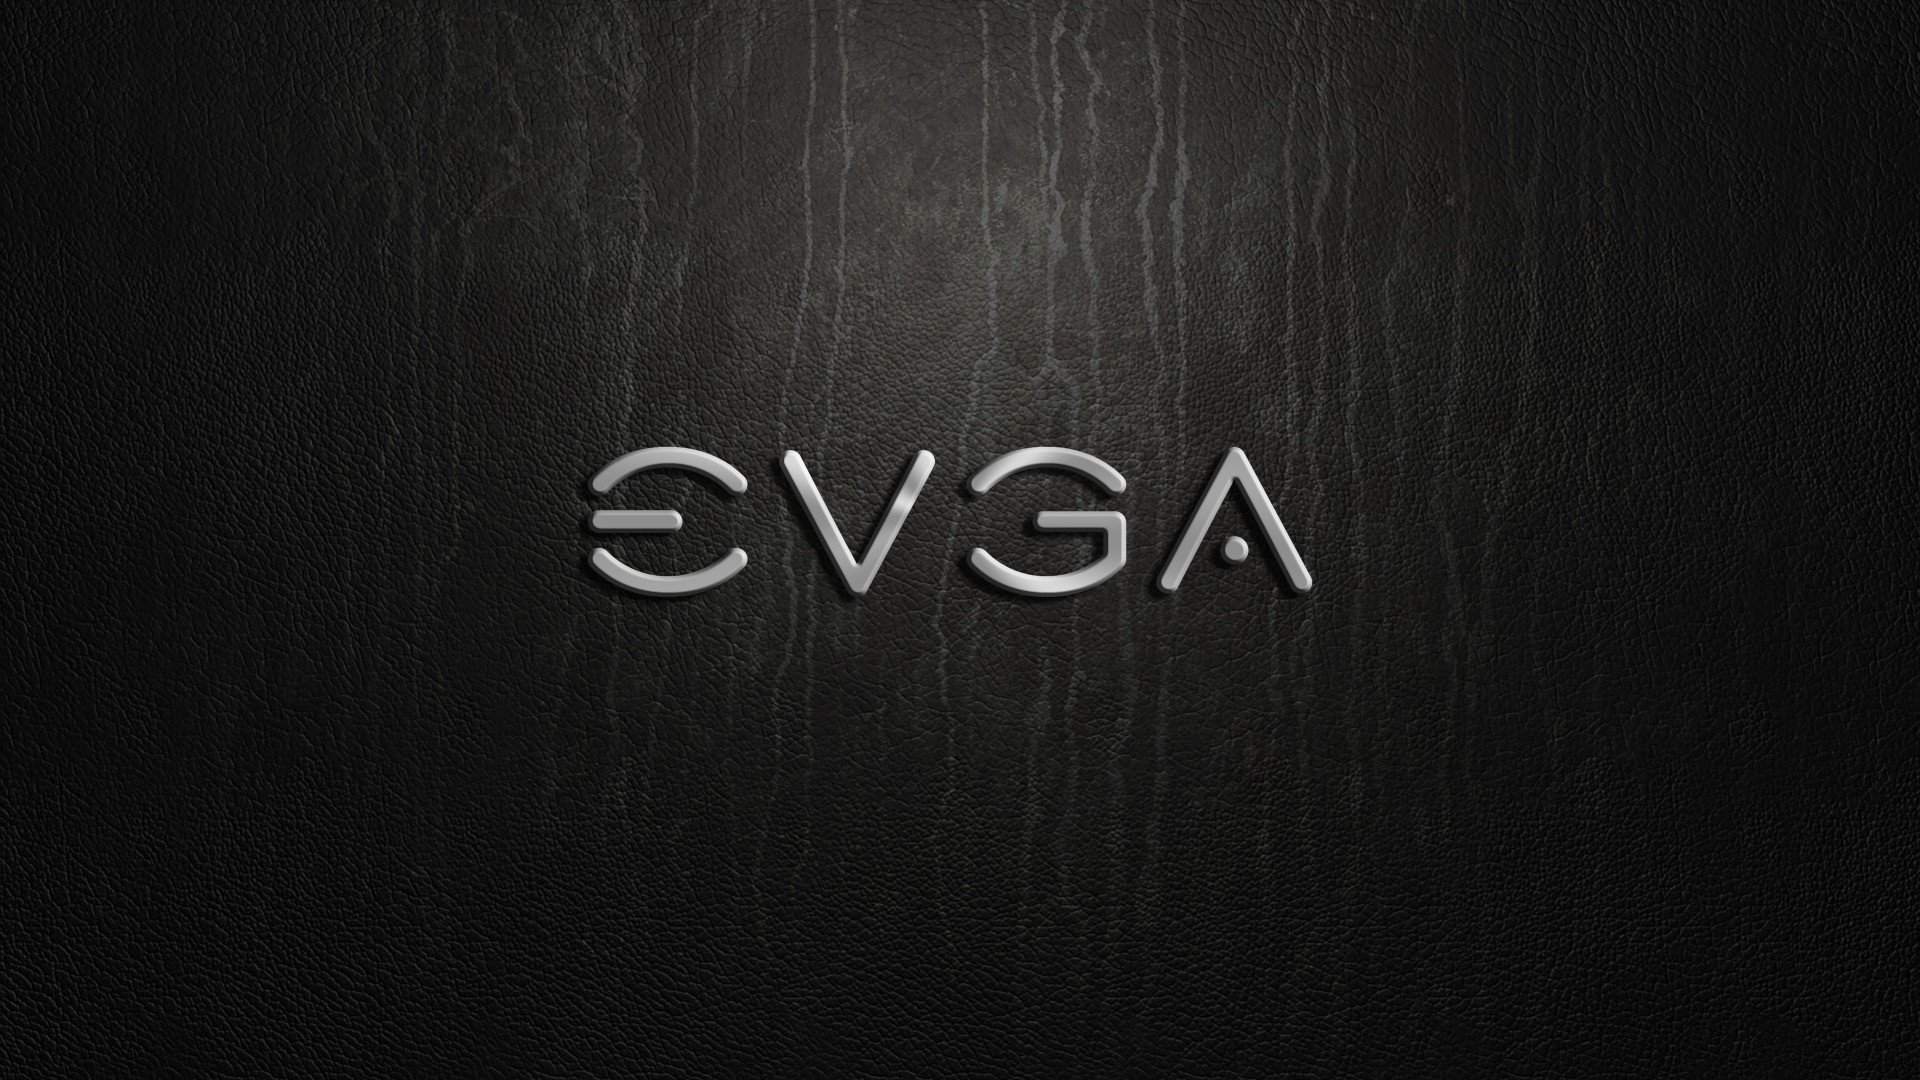 1920x1080 EVGA Wallpapers